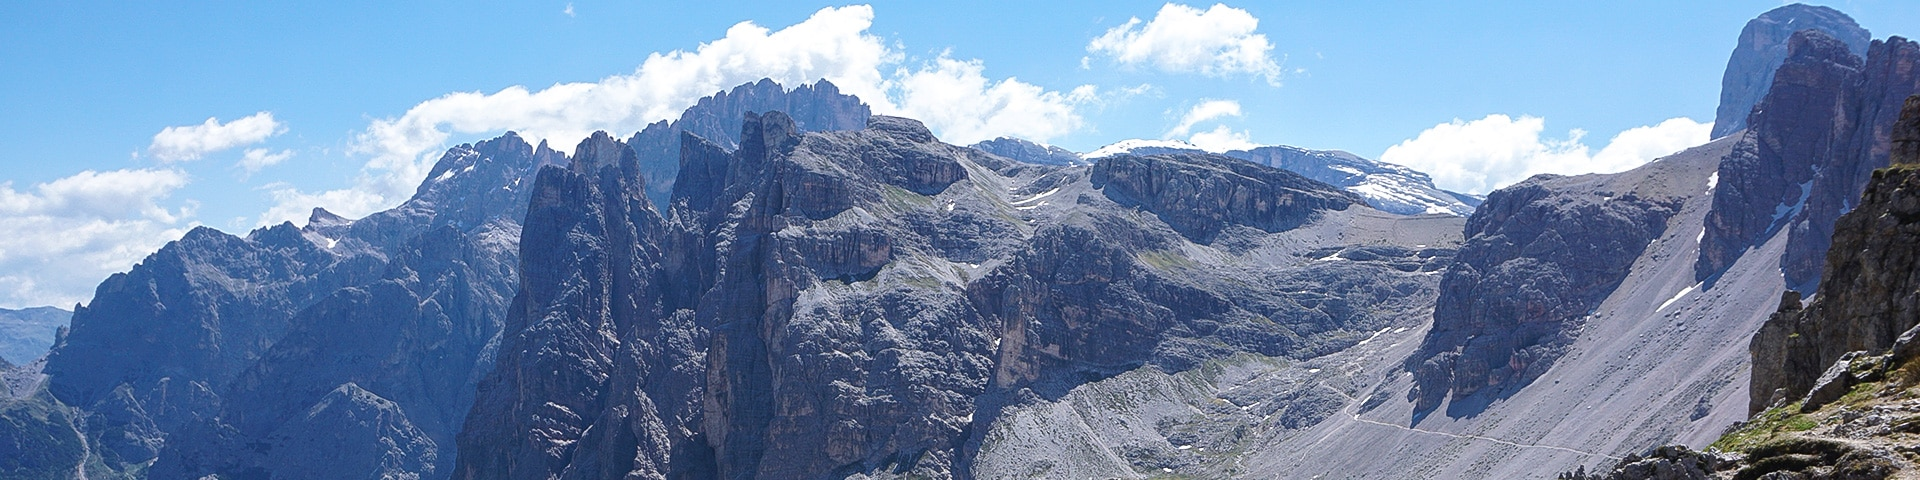 Panorama of the Tre Cime hike in Dolomites, Italy